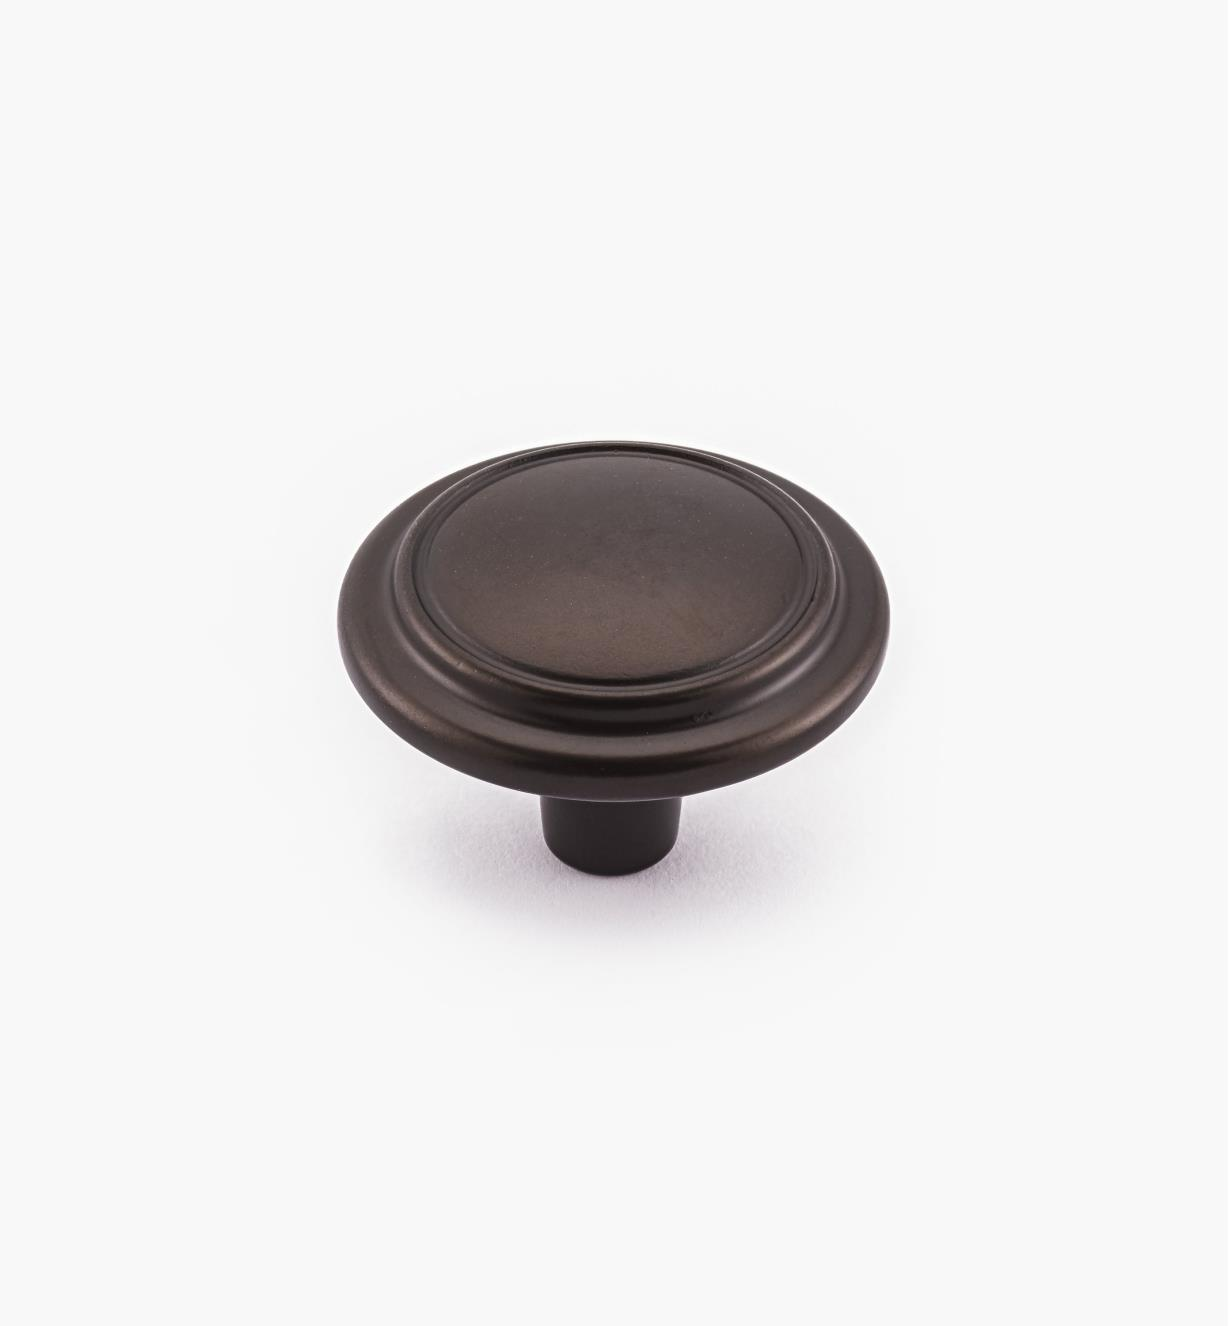 01W0615 - 32mm Oil-Rubbed Bronze Knob